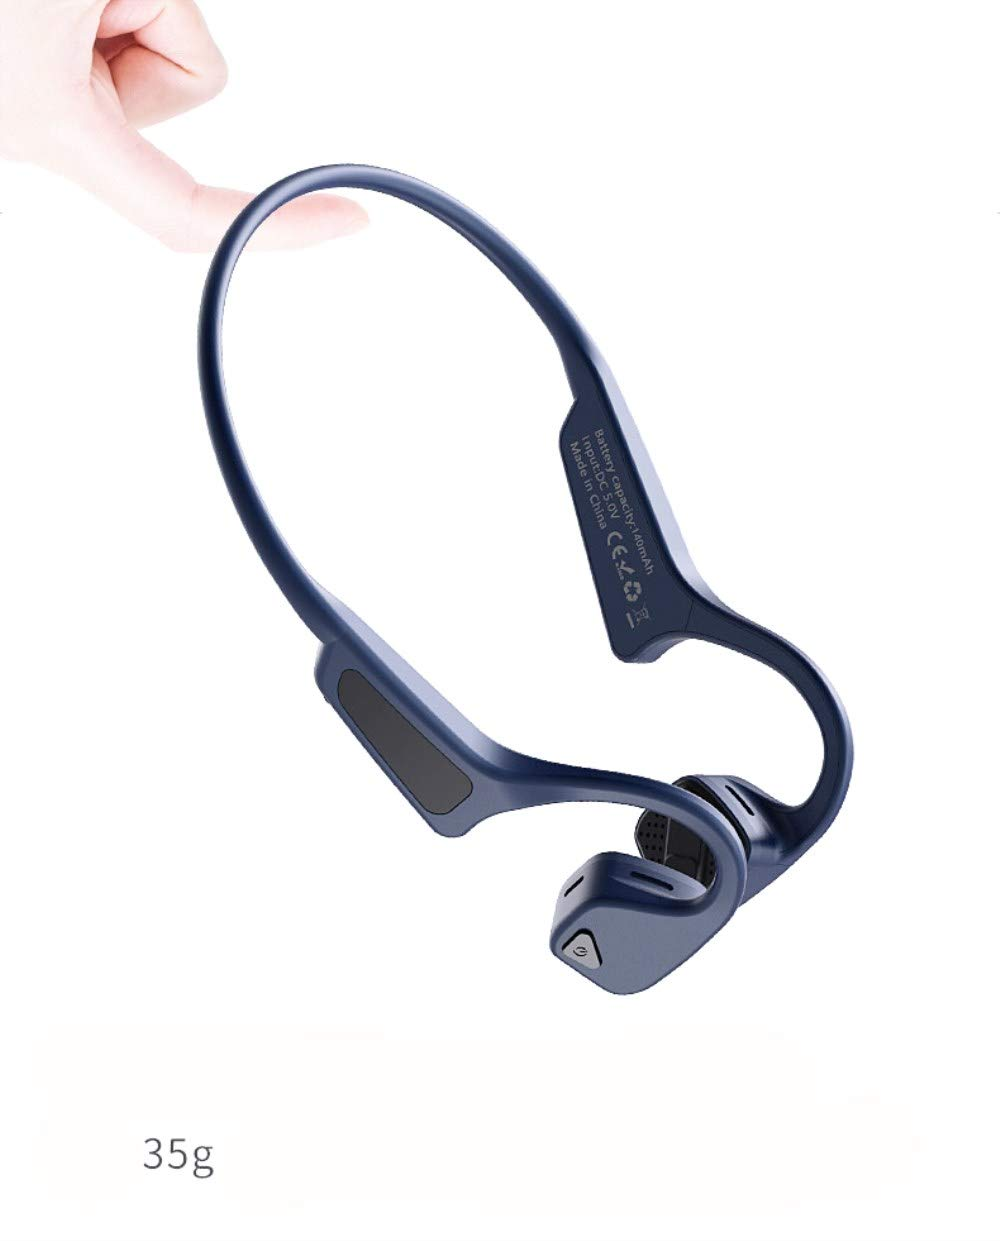 Bone Conduction Bluetooth Headset, G618 New Generation Wireless Headphones, with Bone Driving Technology, diodema Type, Sportsmanship, Sports, etc.